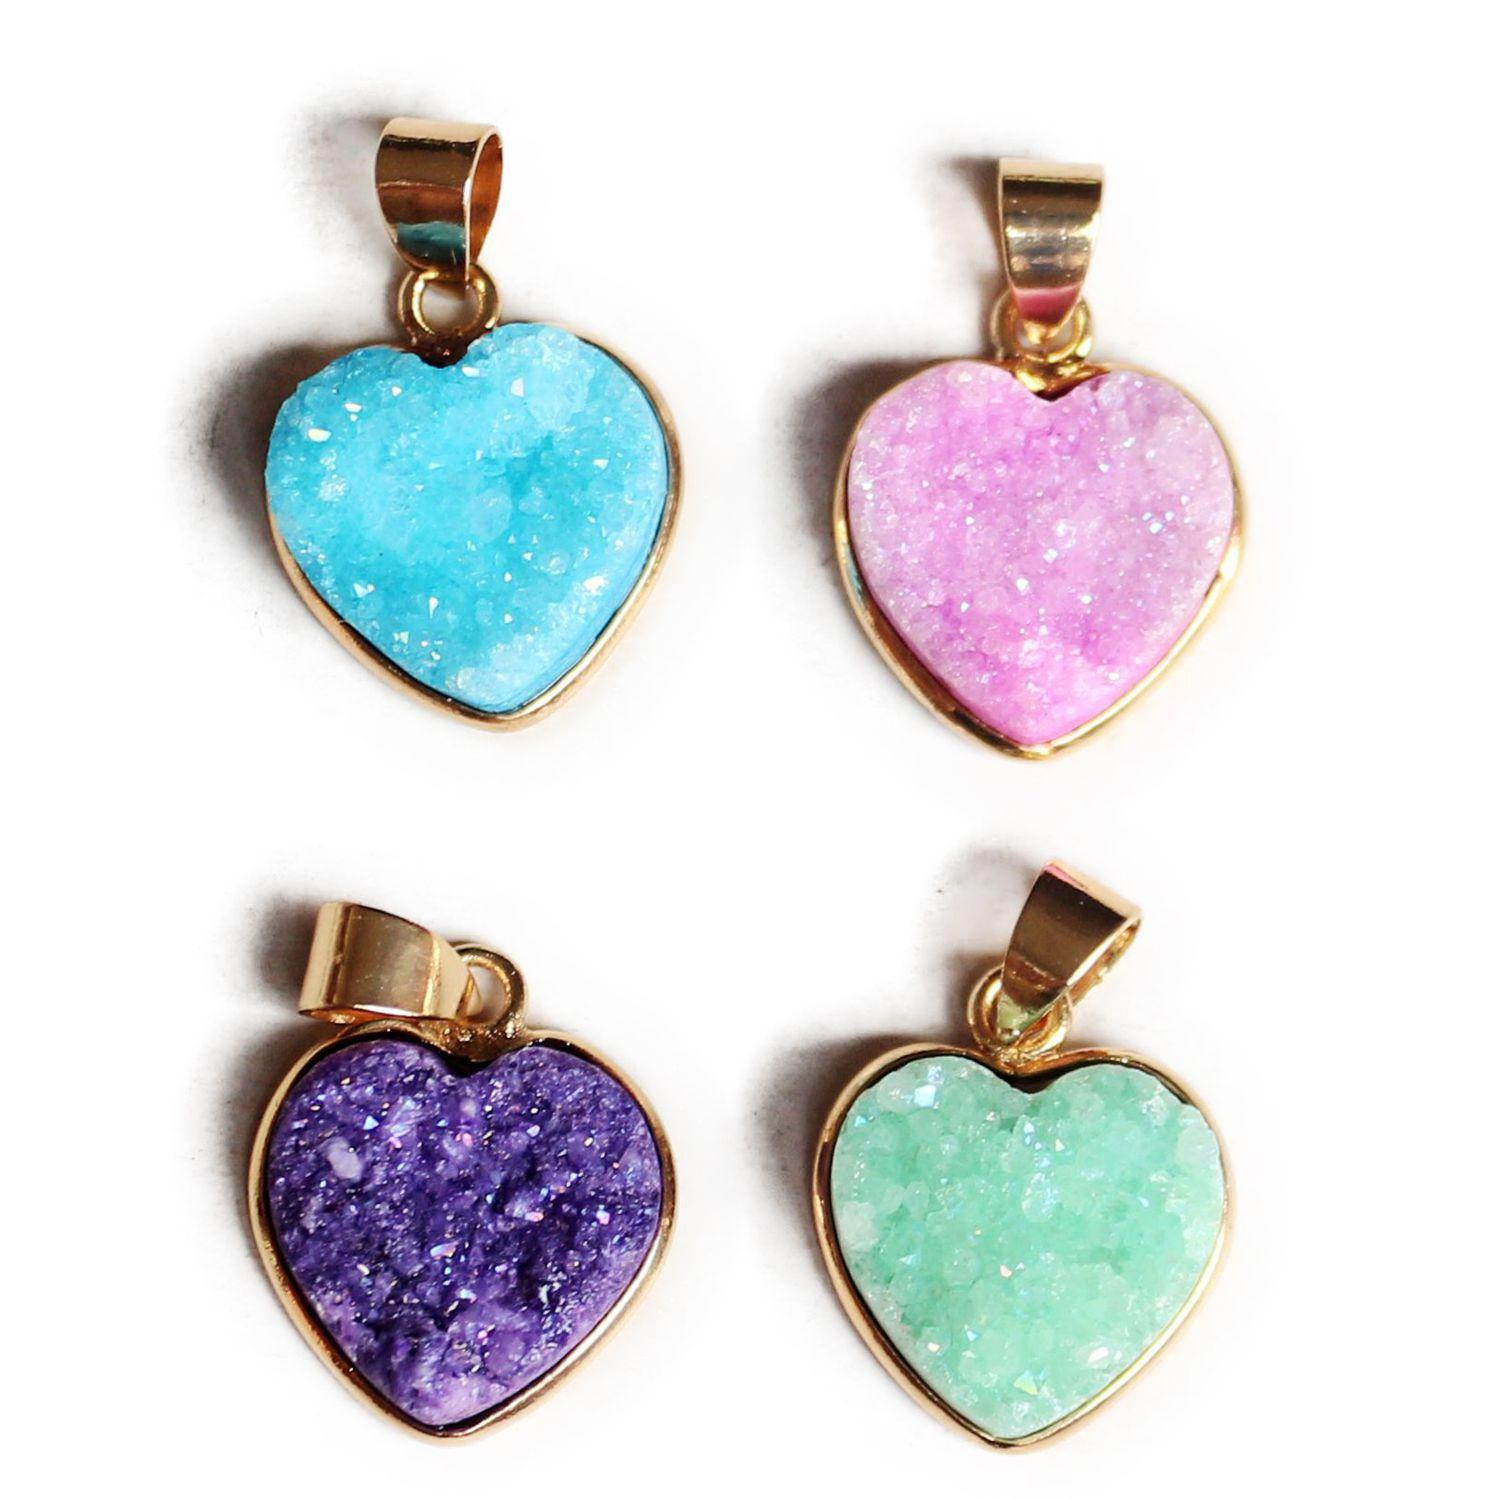 New Heart Pendant Natural Crystal Gemstone Pendant for Necklace Choker Fashion Jewelry Love Gift